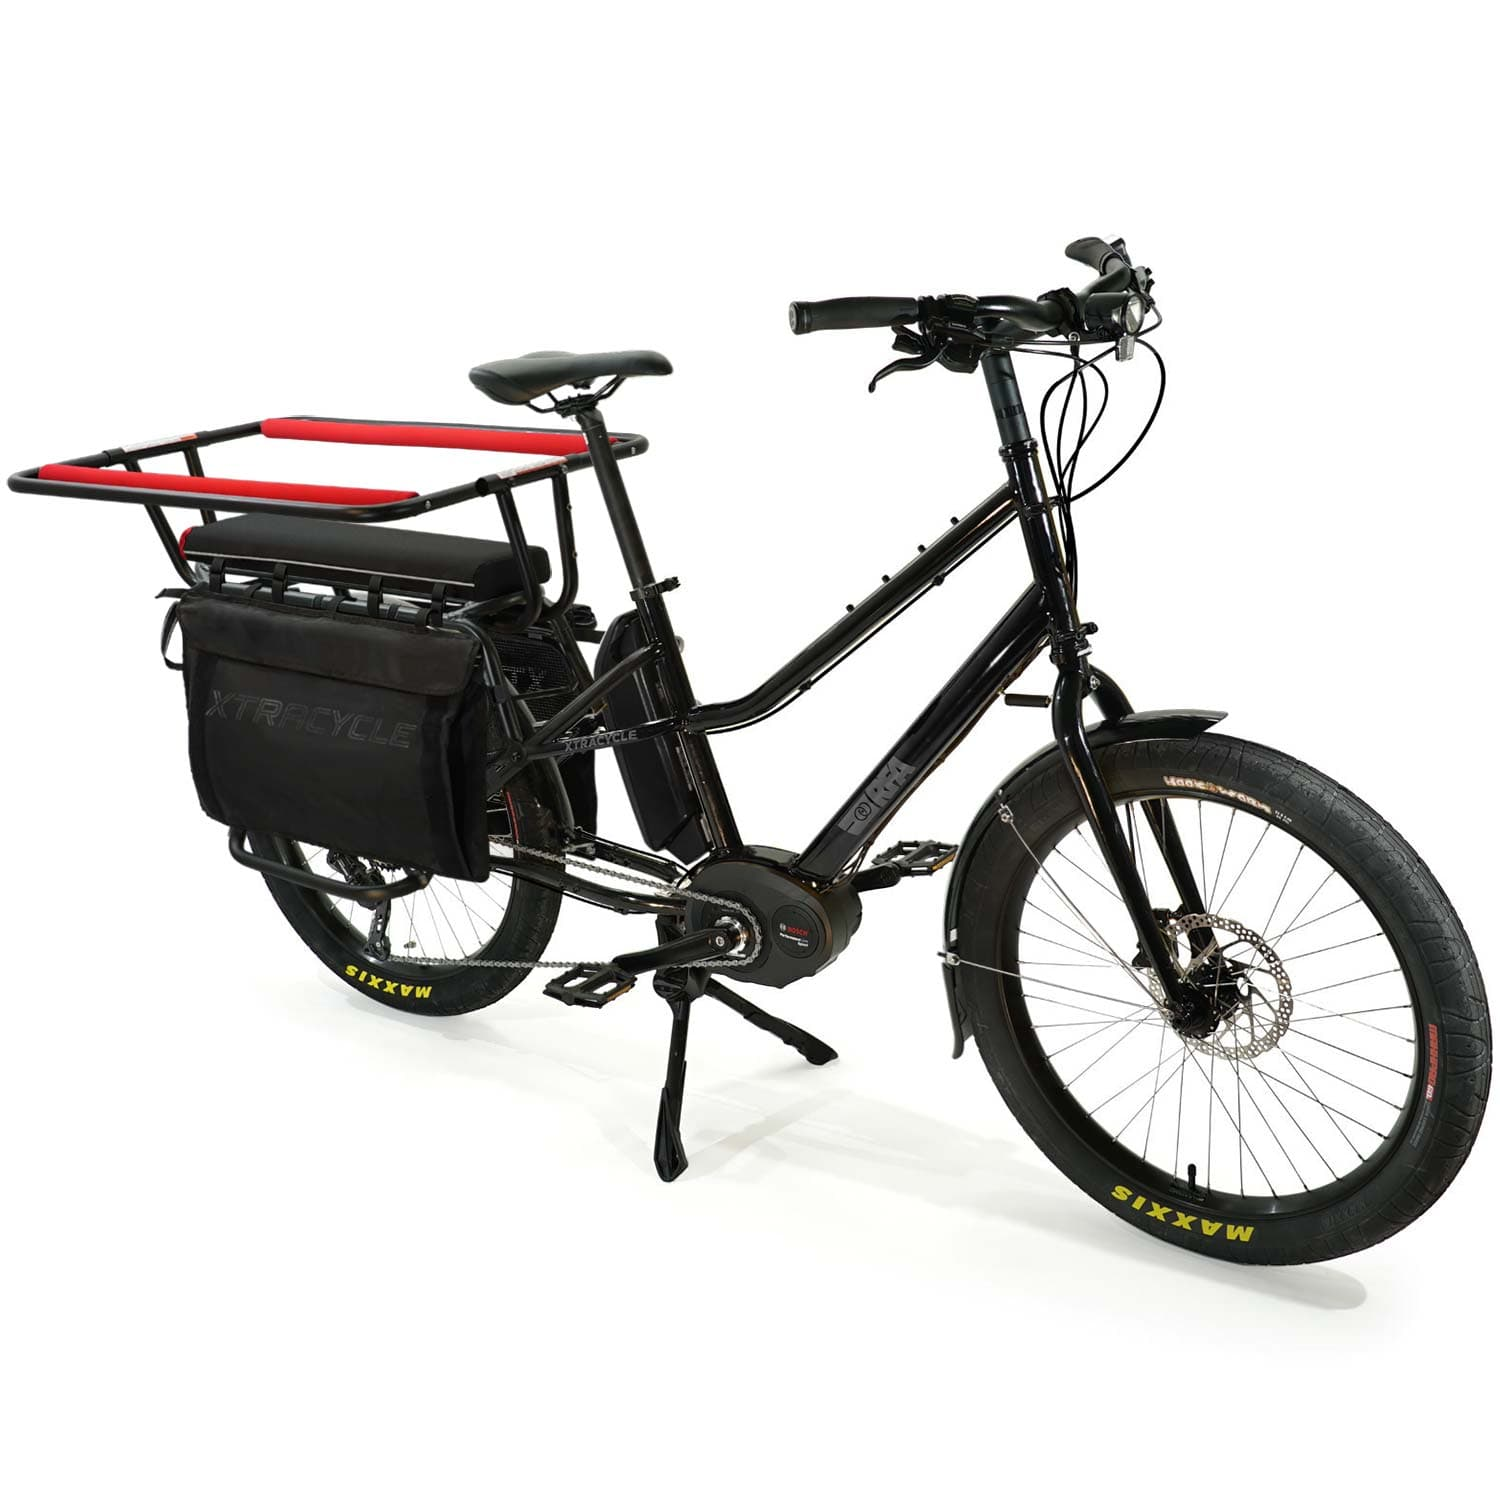 Xtracycle RFA eBike Spec Review